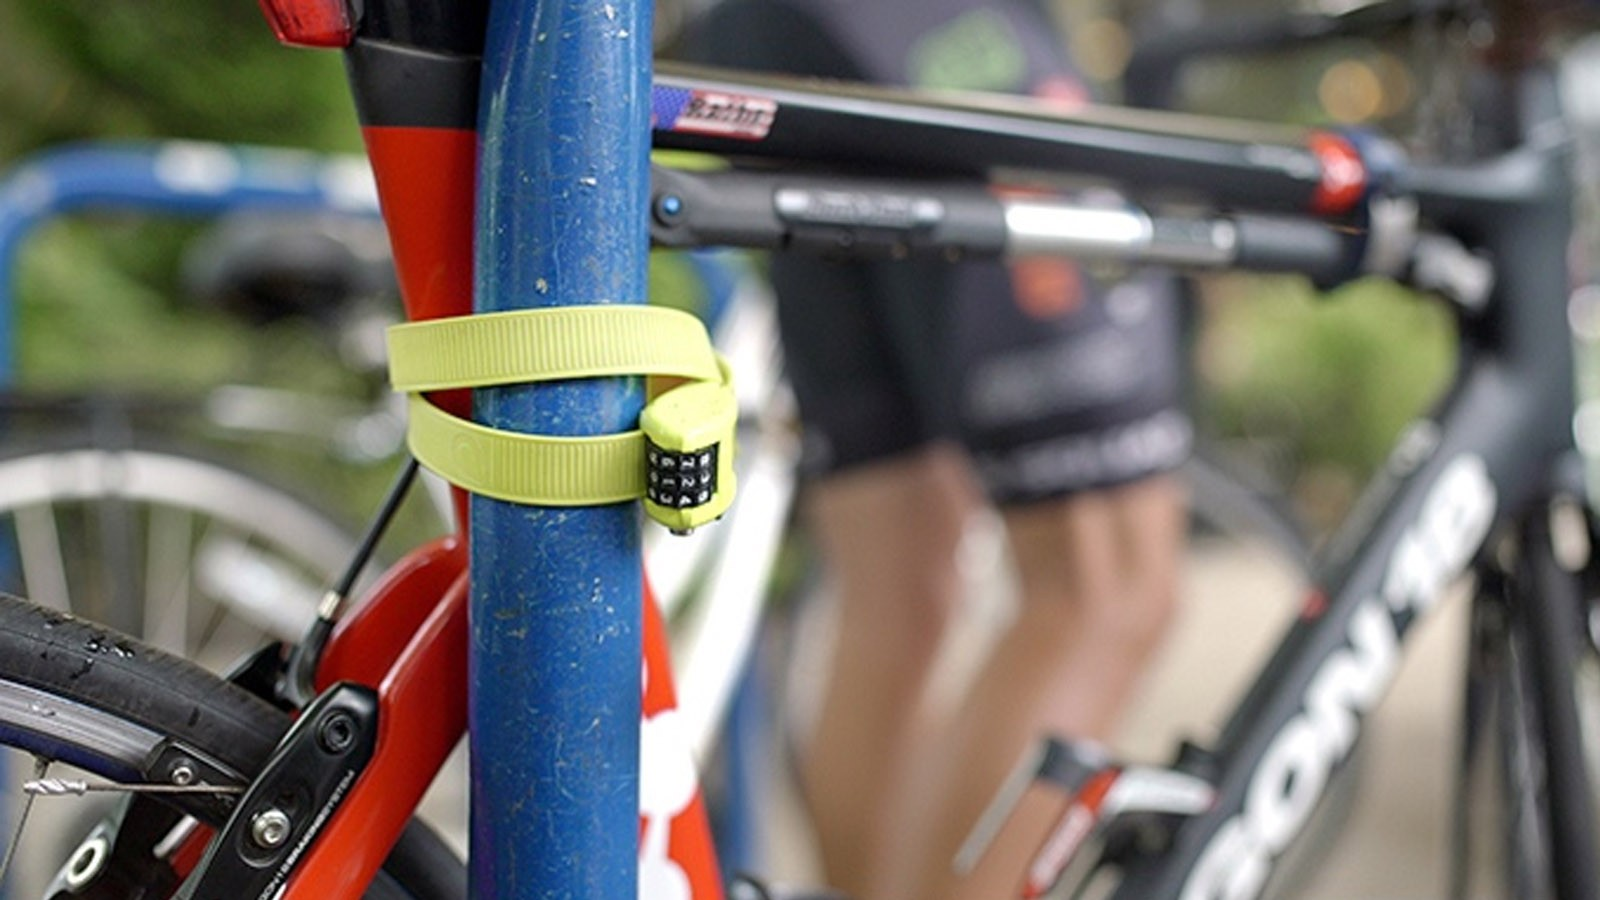 The OTTOLOCK is a small, lightweight, strong cinch lock